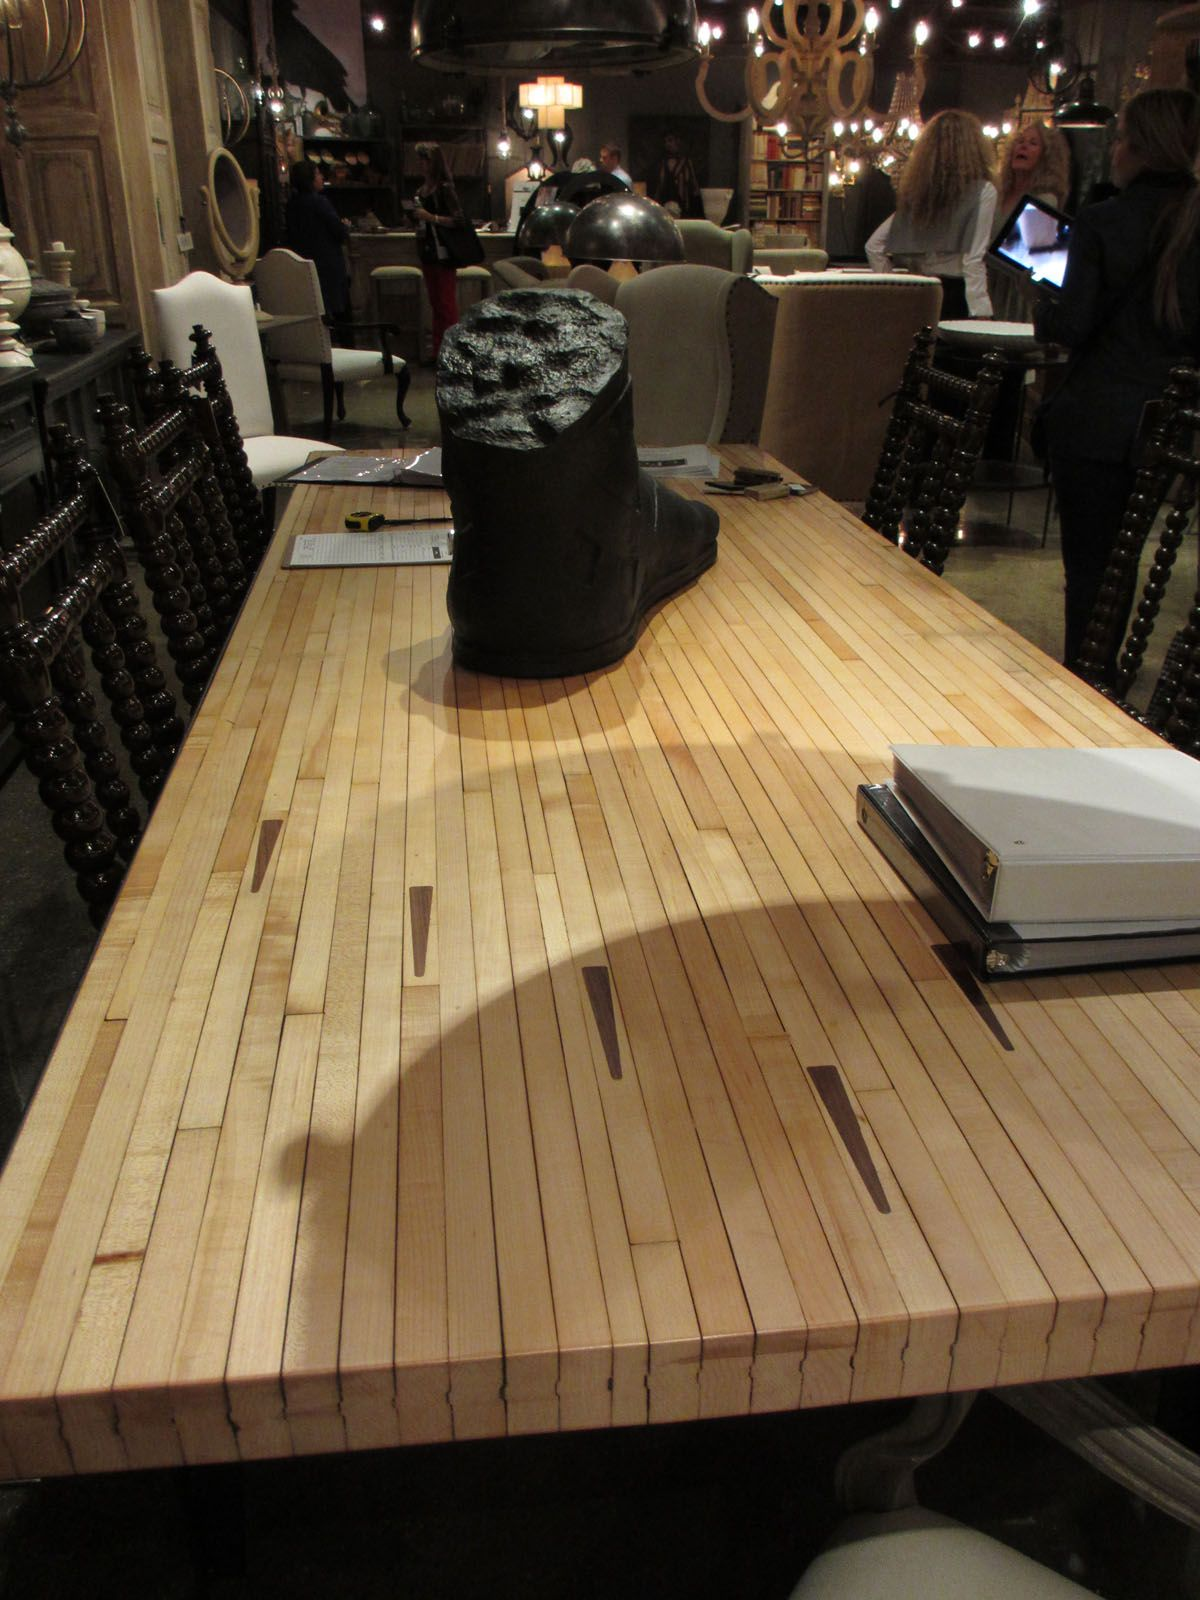 Bowling Alley Floor Table Top Noir Hpmkt High Point